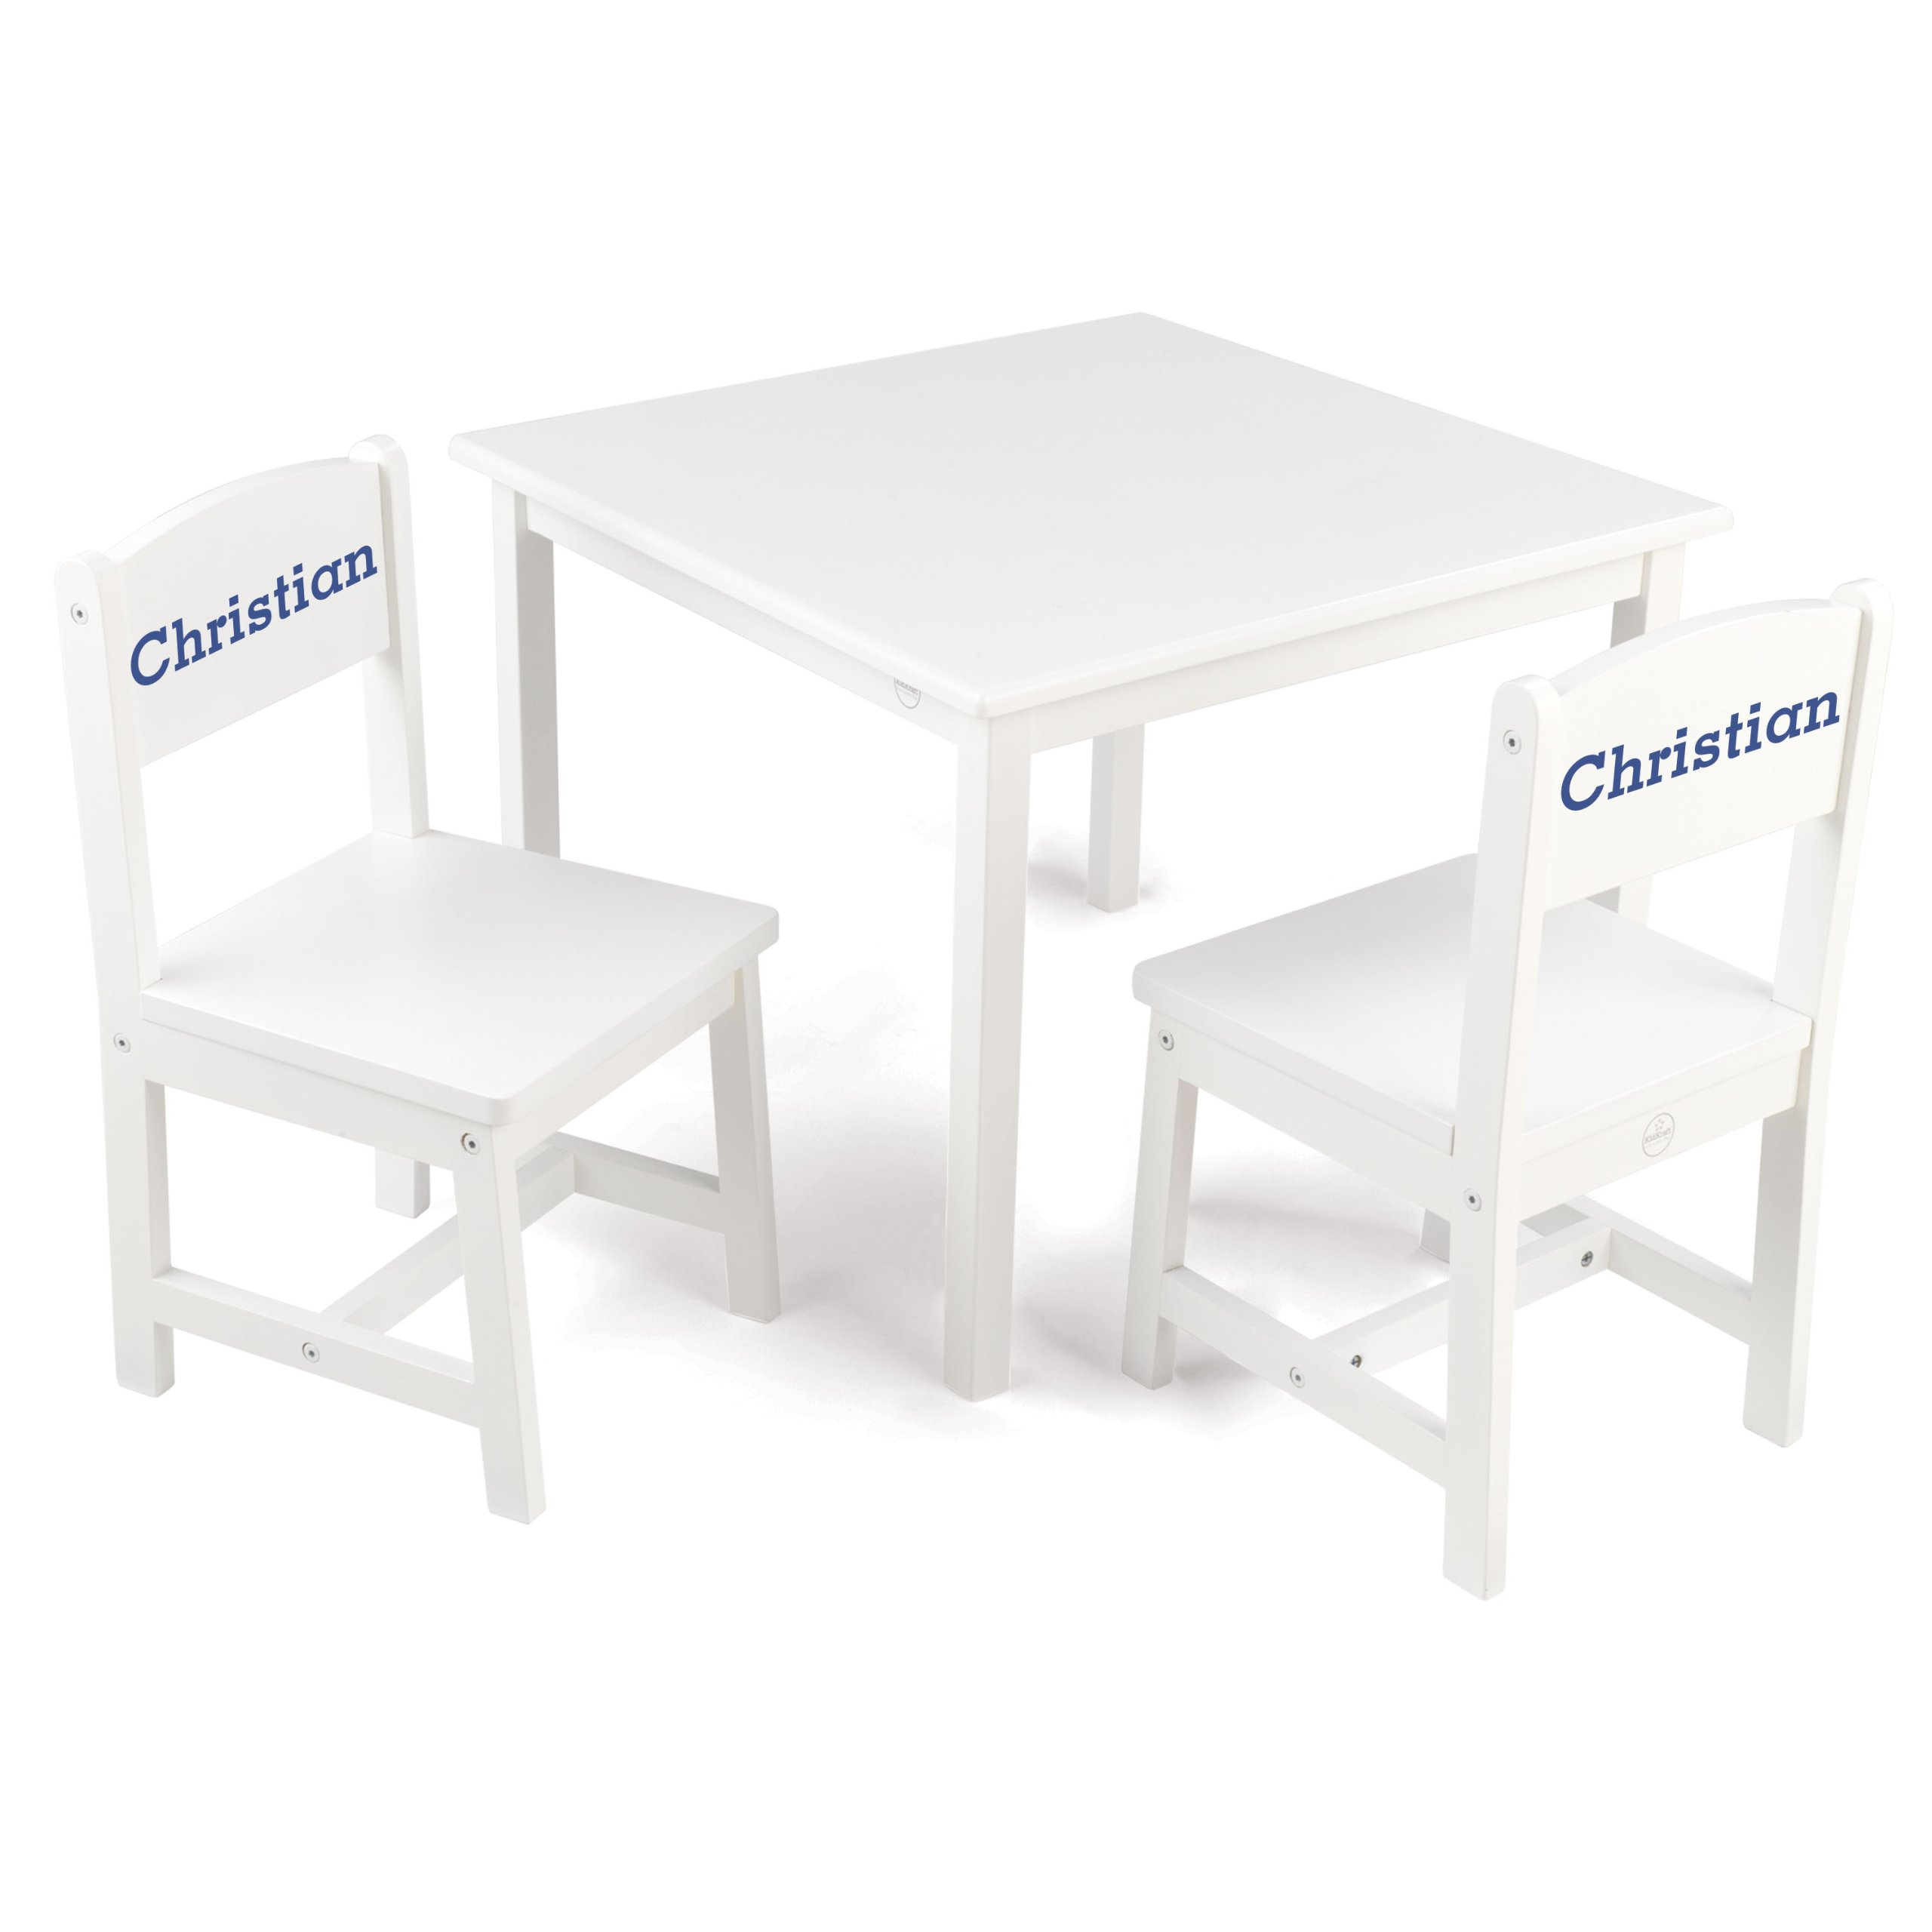 KidKraft Aspen Table and Chair Set White with Blue Serif - Christian by KidKraft